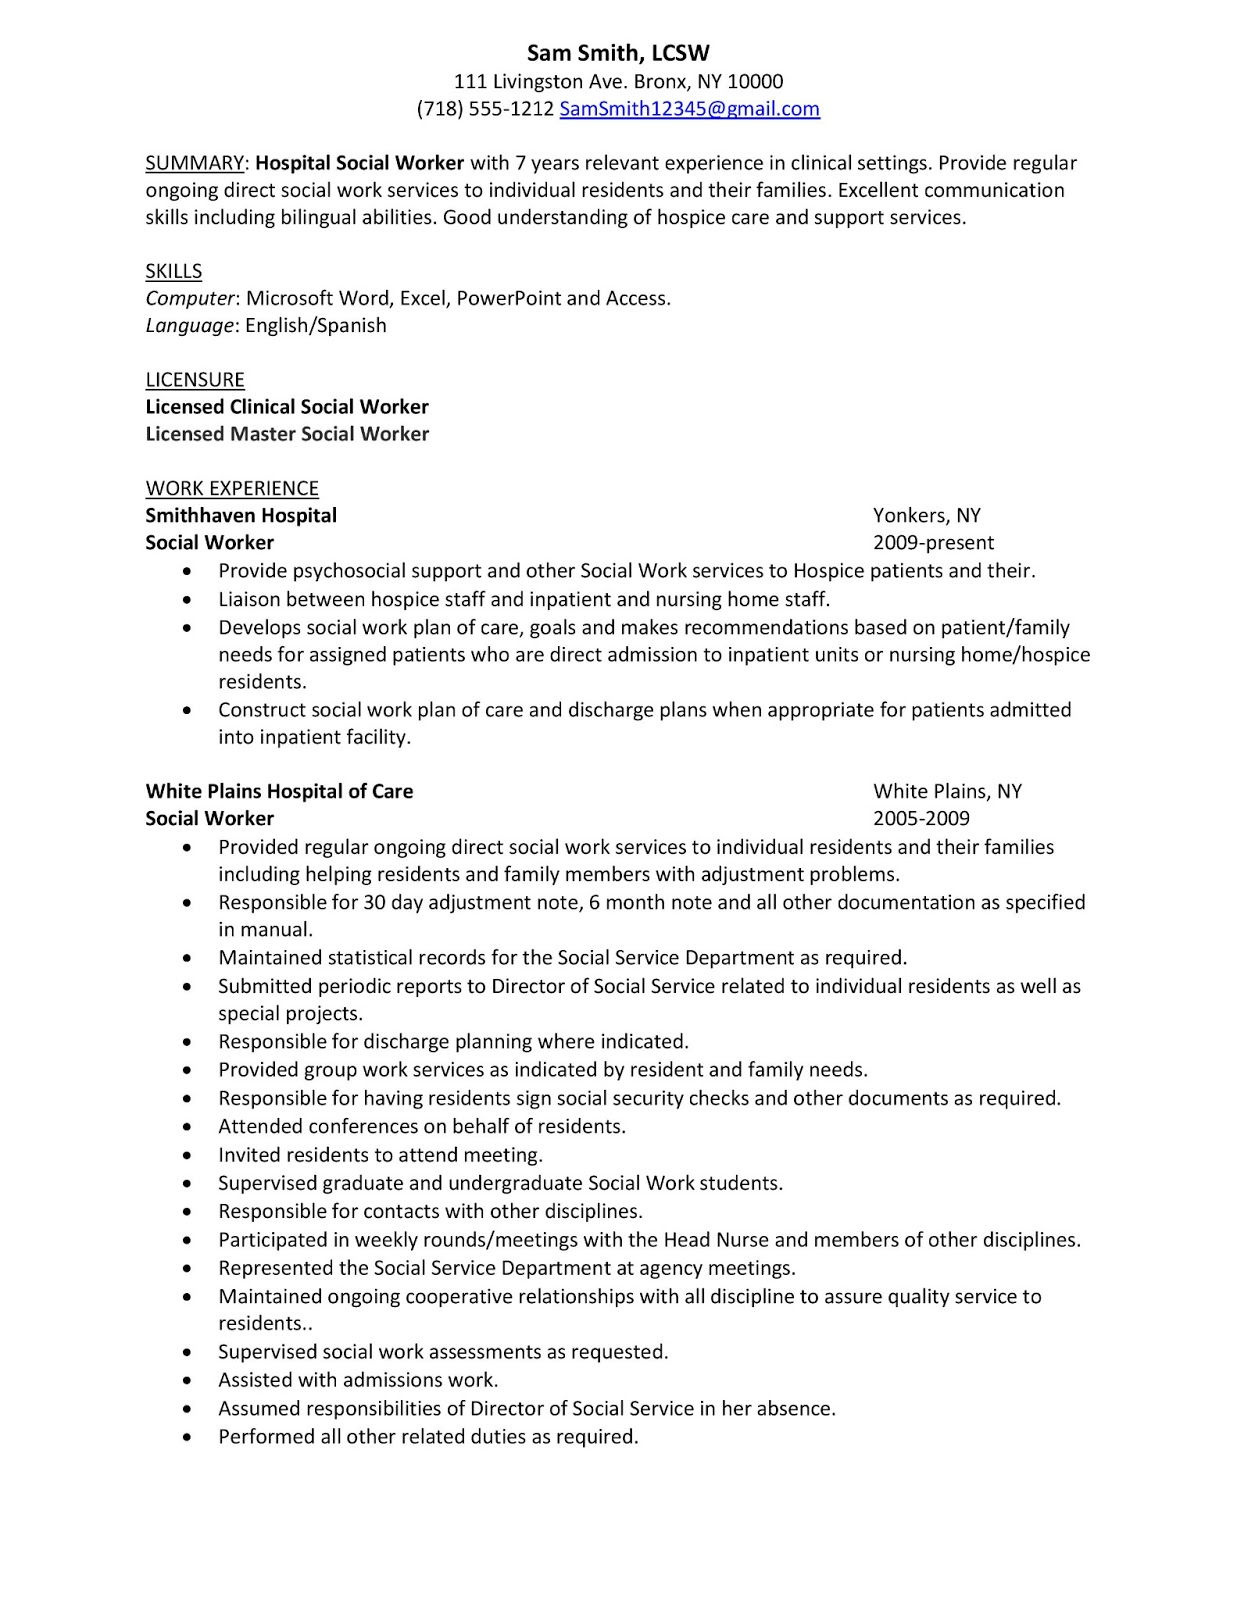 Writing A Successful College Application Essay Objective Resume